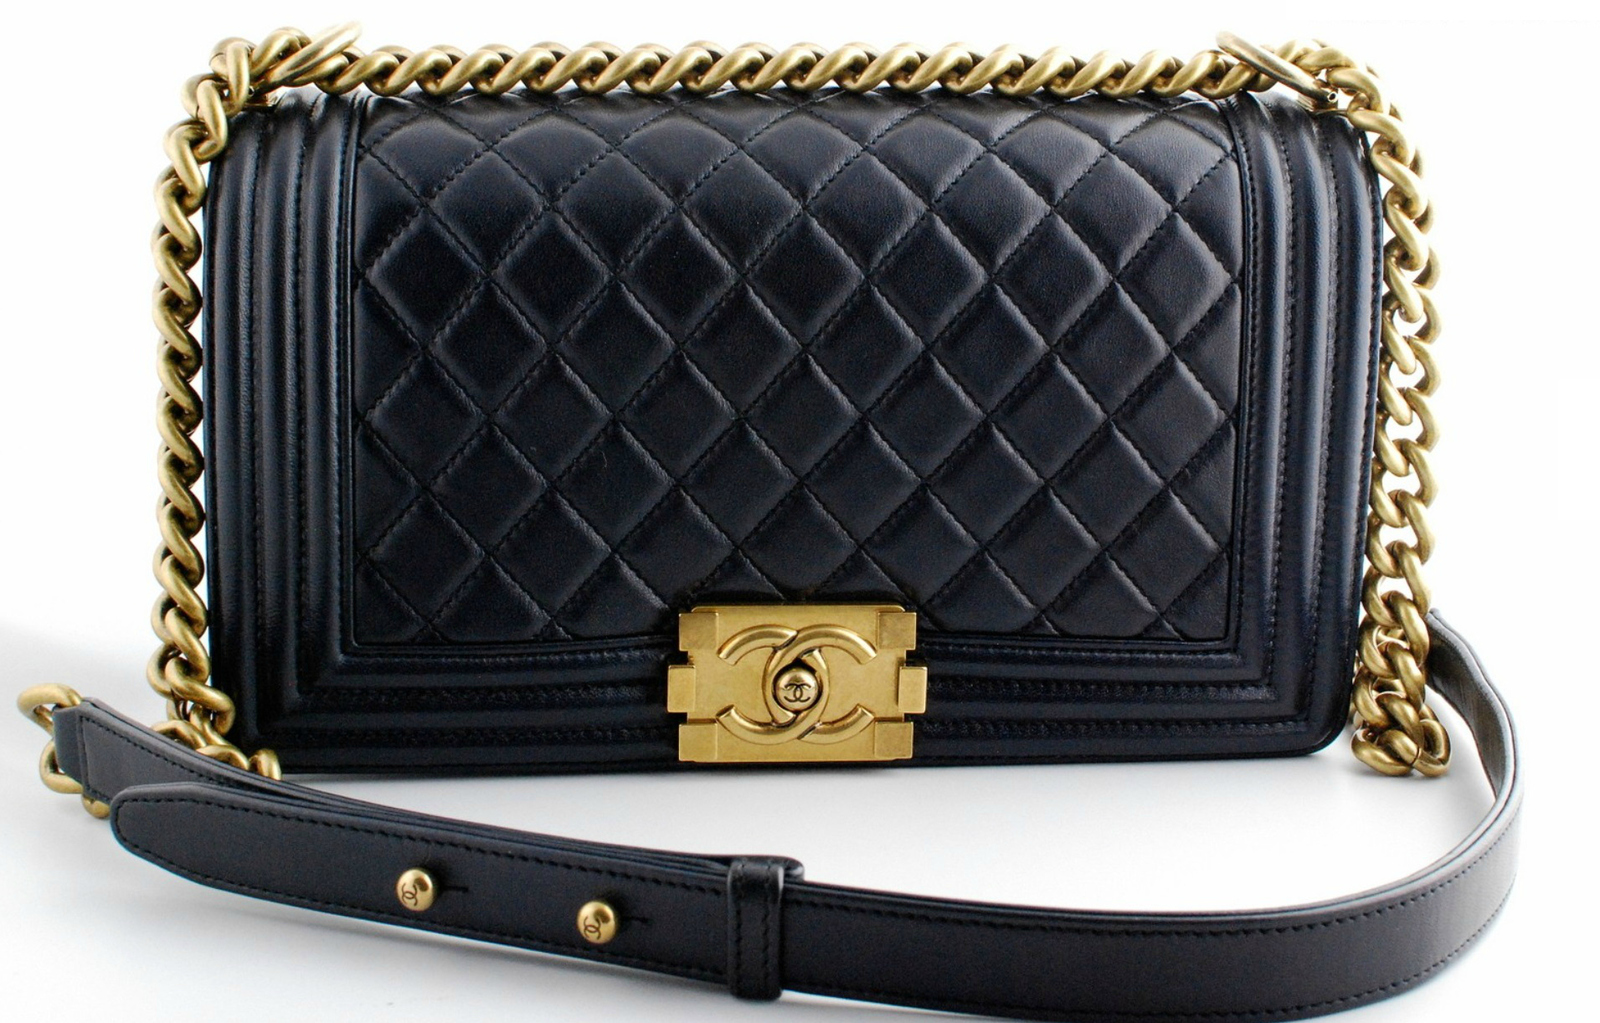 311cb9dc1e05 AUTHENTIC CHANEL PEARLY BLACK QUILTED LAMBSKIN MEDIUM BOY FLAP BAG ...